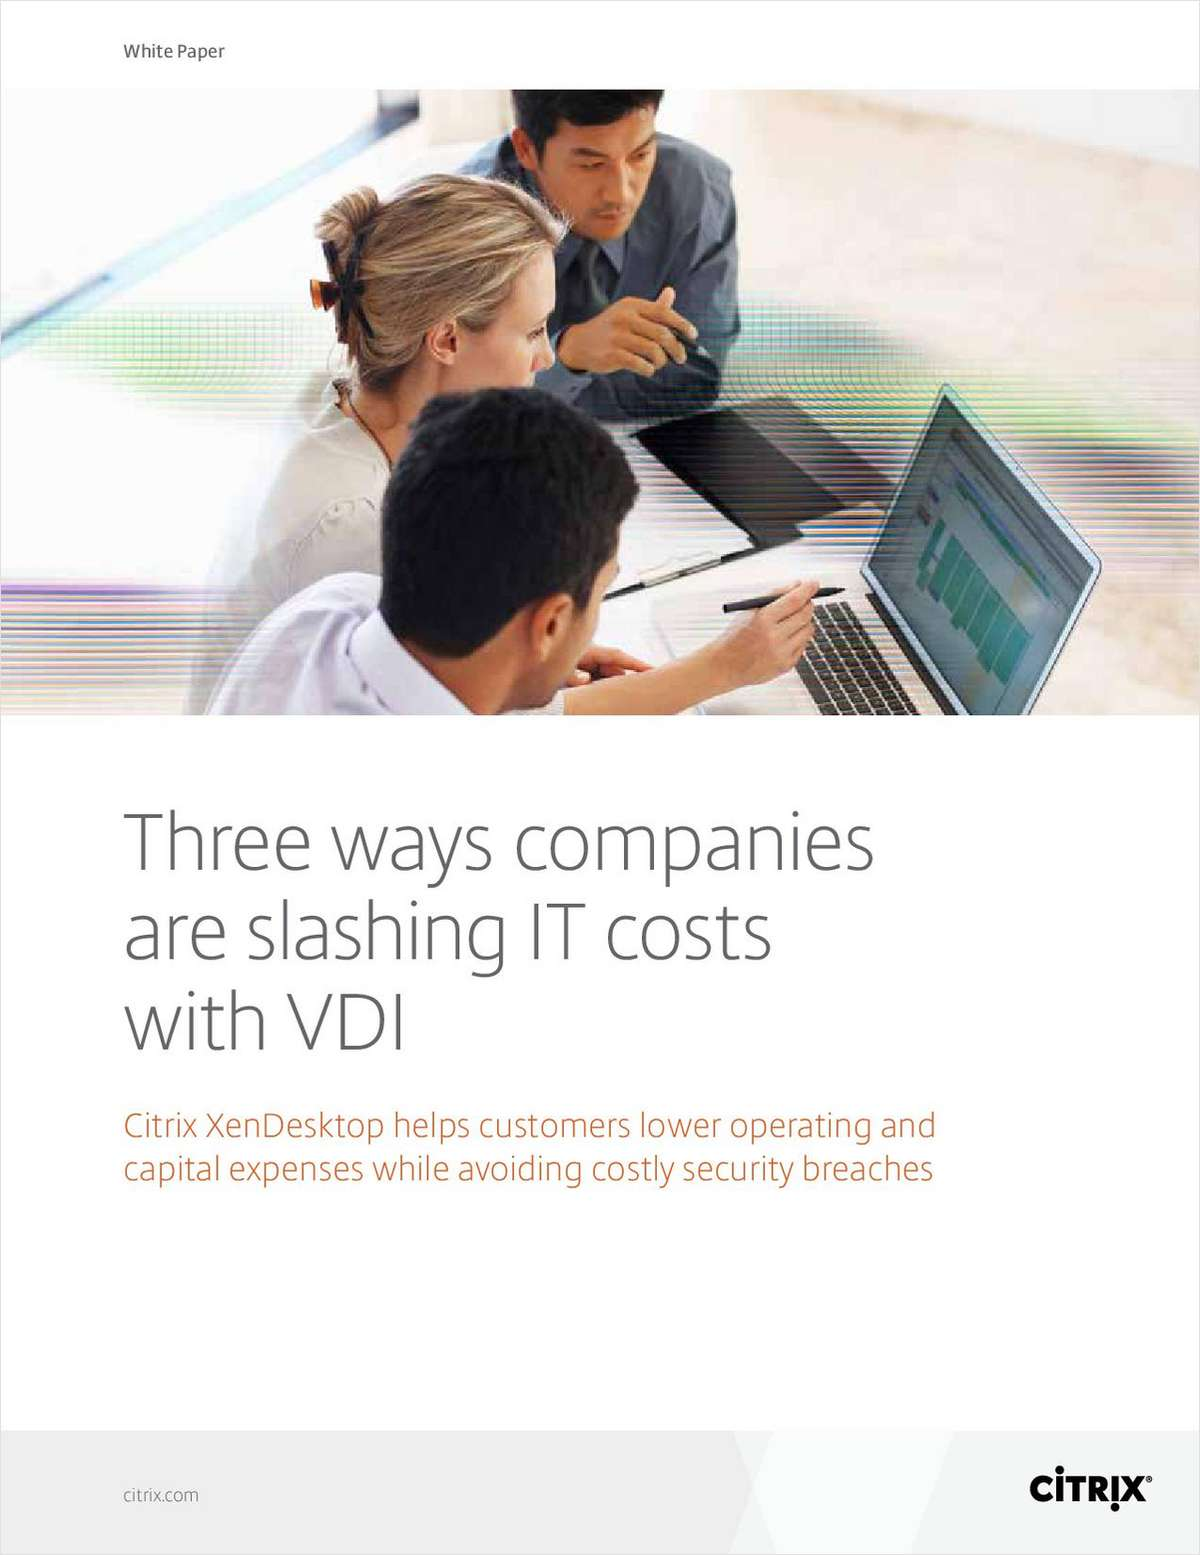 Three Ways Companies are Slashing IT Costs with VDI